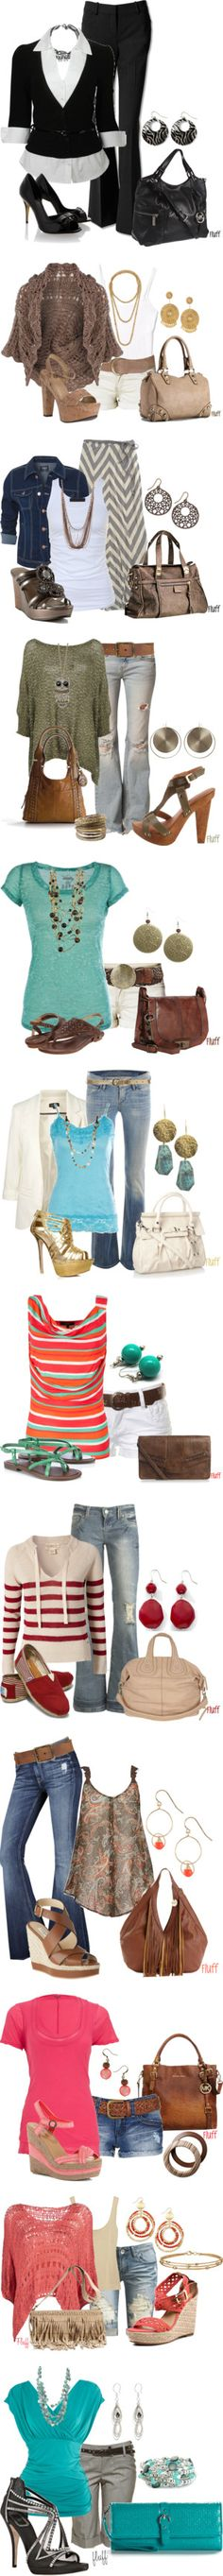 Some really cute tops and shoes